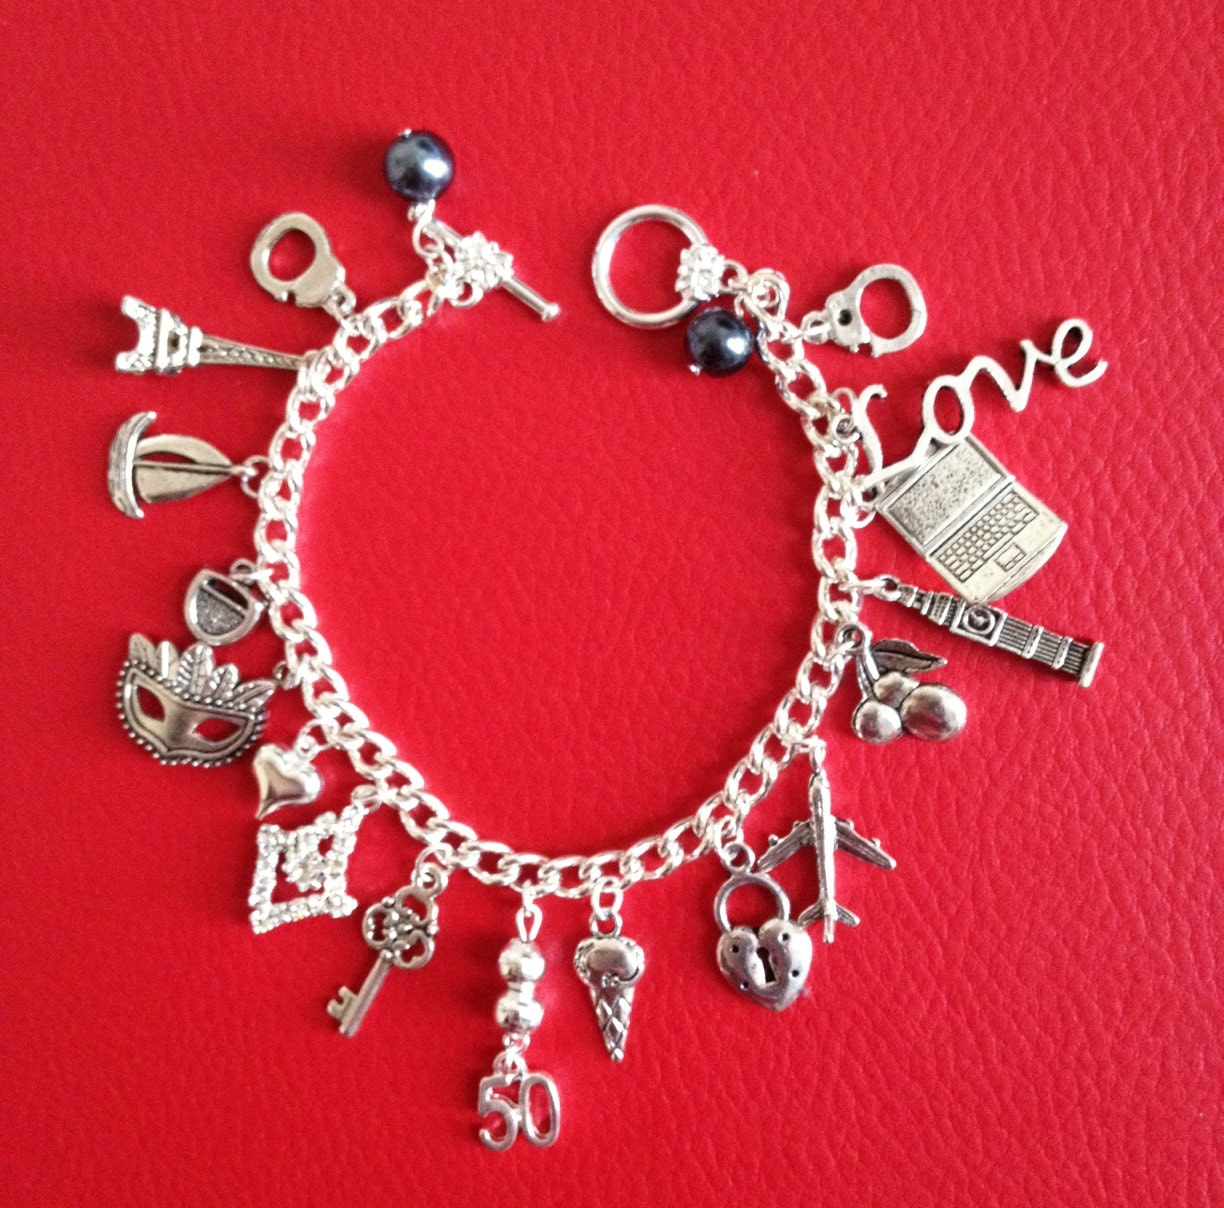 50, Fifty Shades Of Grey Pulseras Beads Inspirados clave Máscara